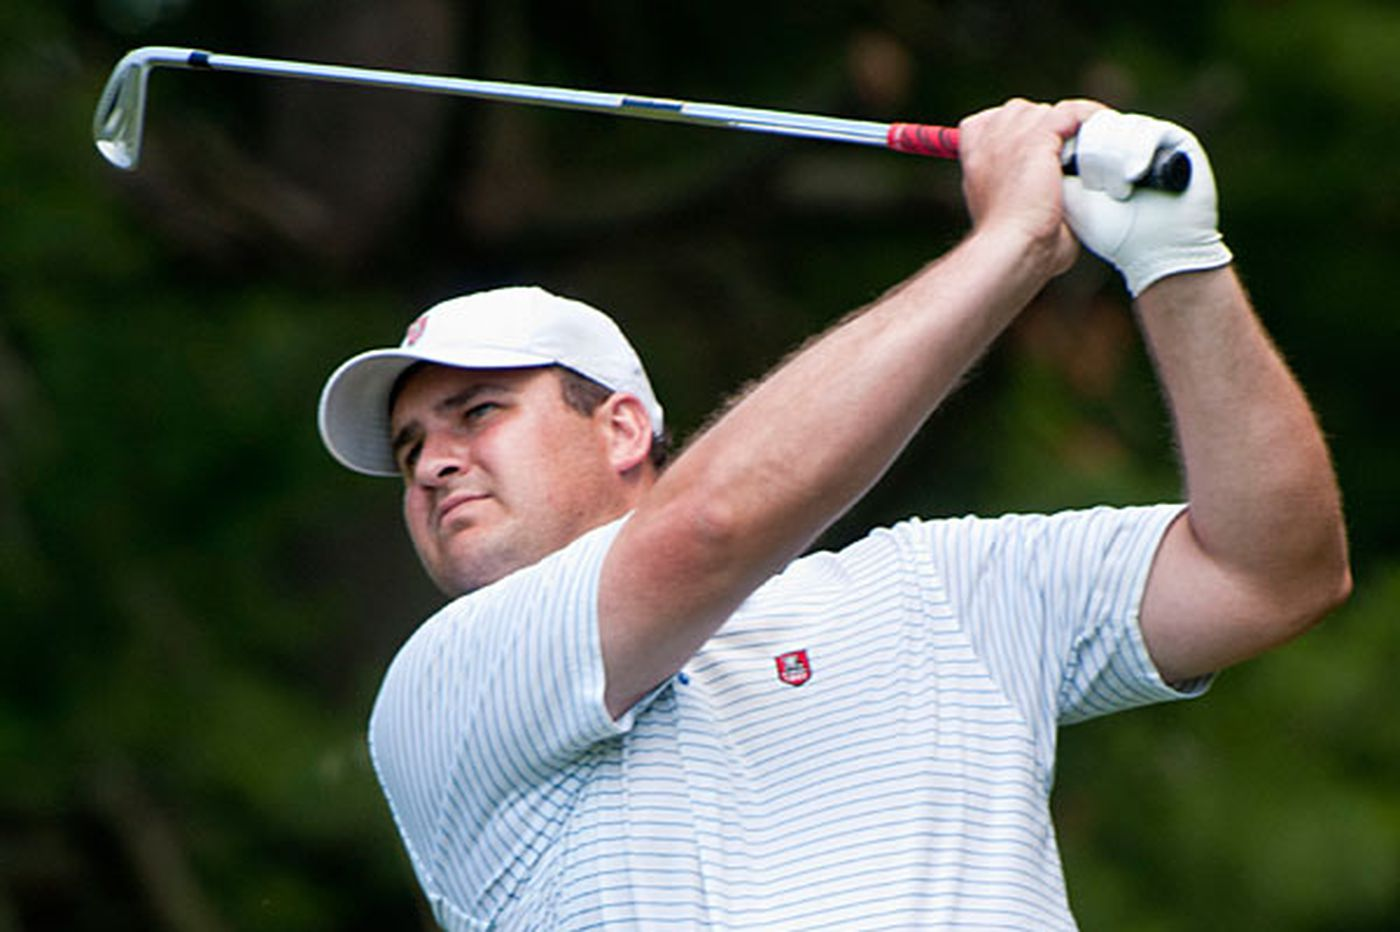 Jeff Osberg advances to quarterfinals of Philadelphia Amateur